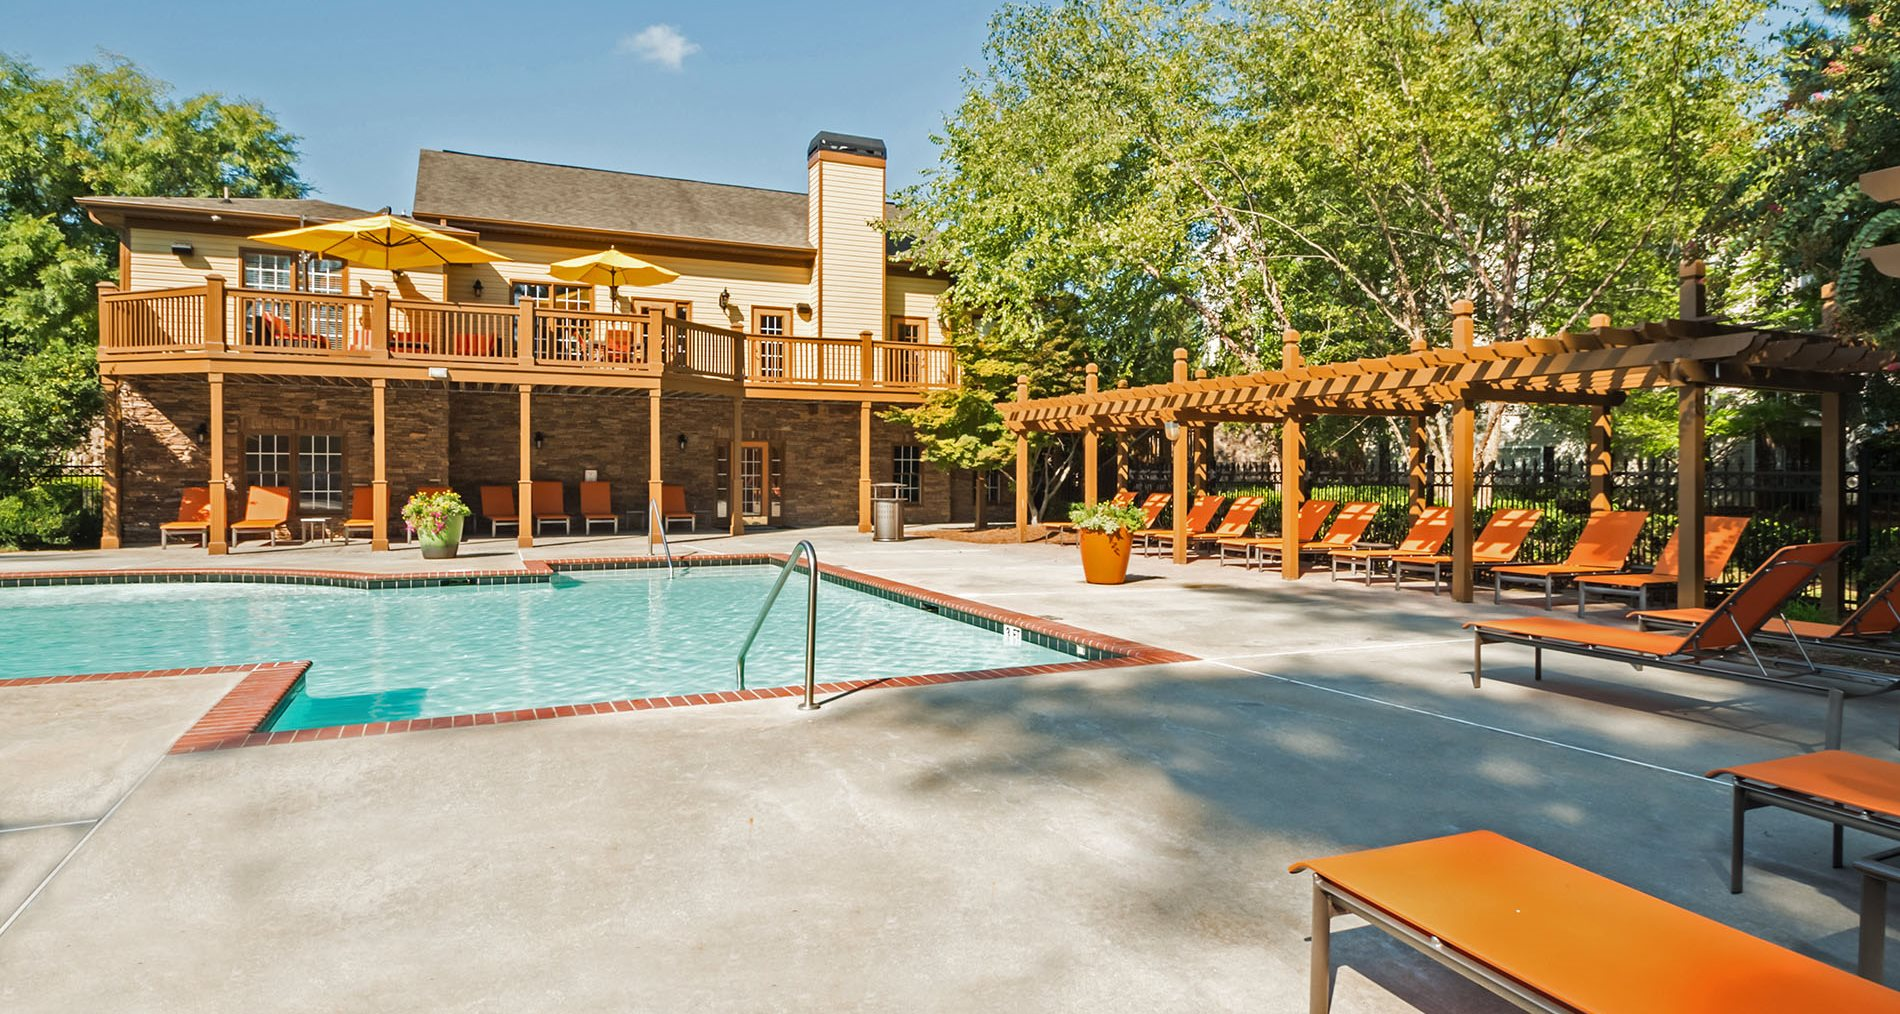 brentwood downs apartments in lilburn ga